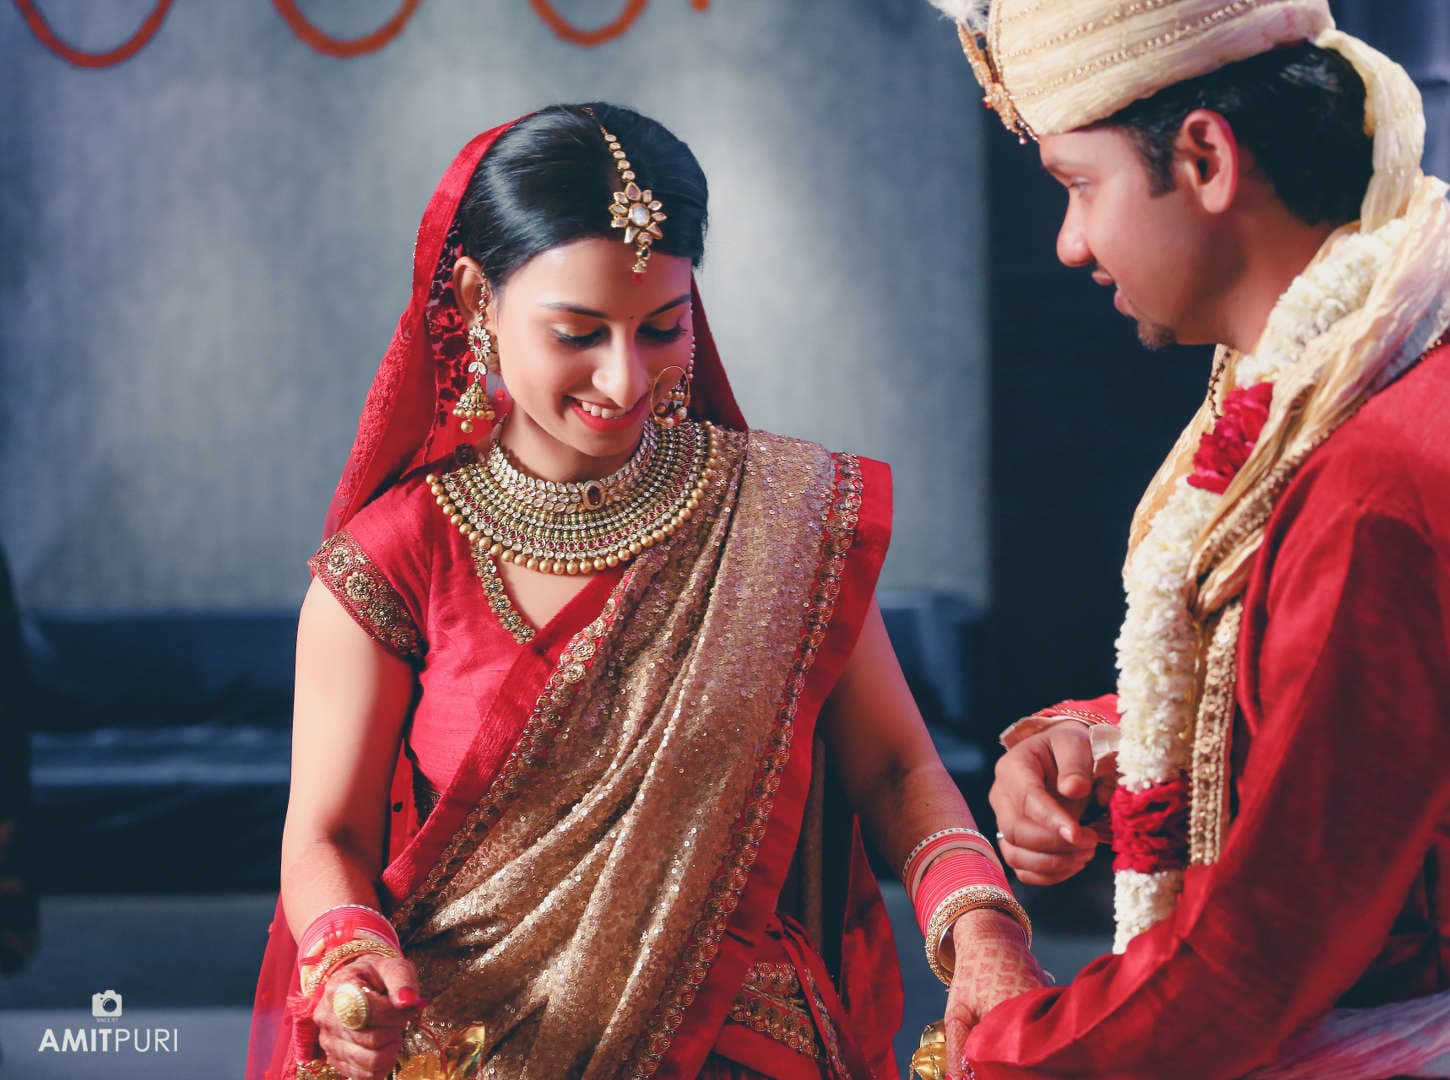 dance by wedding couple:amit puri photography